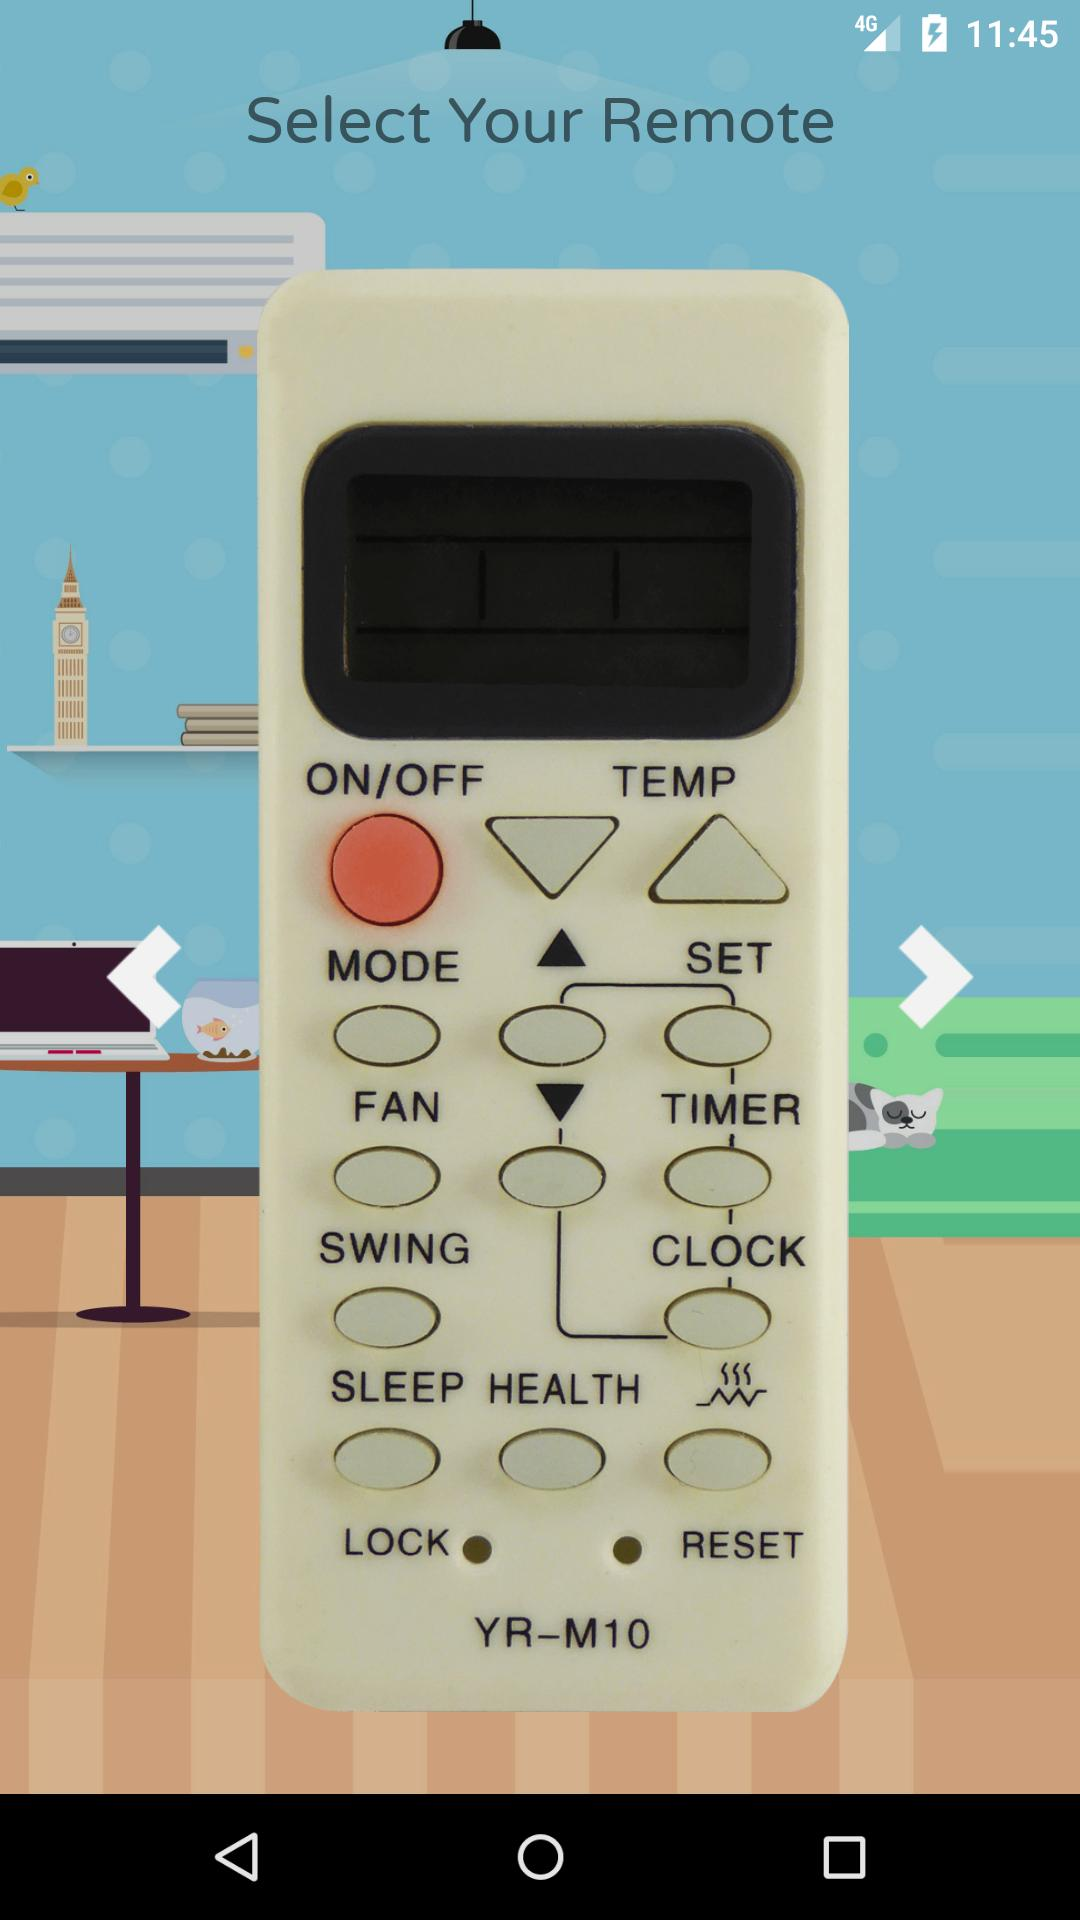 Remote Control For Haier Air Conditioner for Android - APK Download